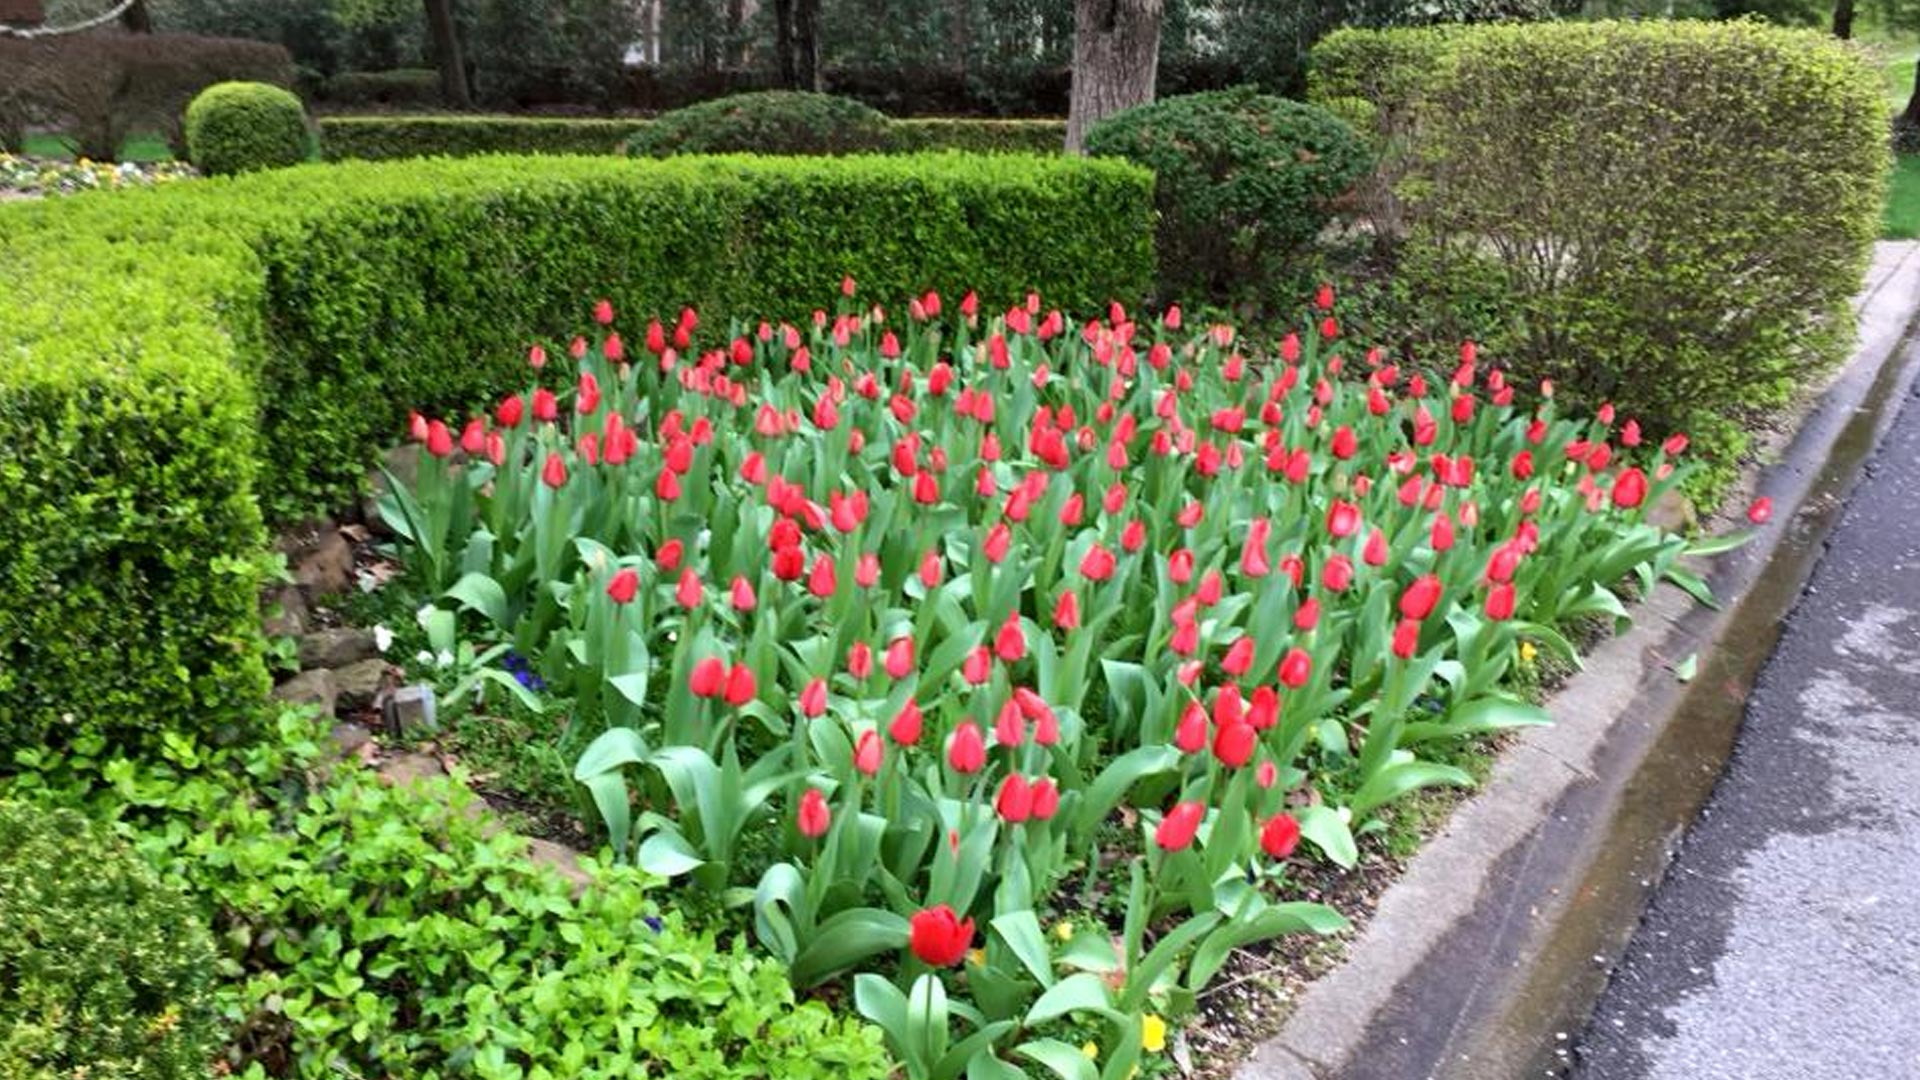 Landscaping that was recently planted with fully bloomed tulips in Mayfield, KY.